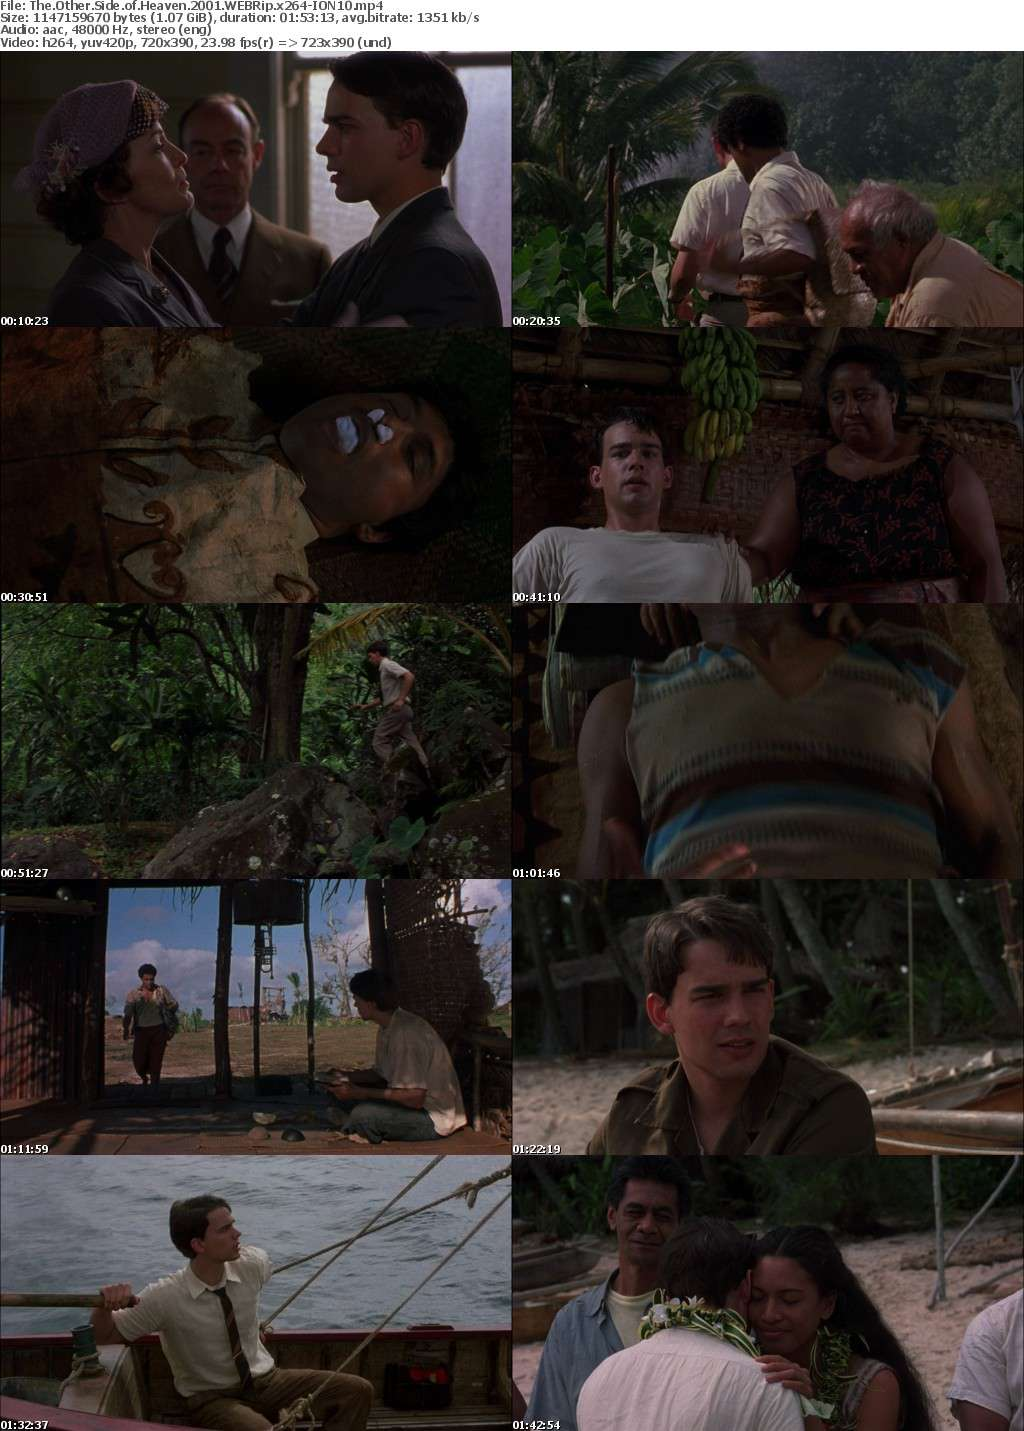 The Other Side of Heaven 2001 WEBRip x264-ION10